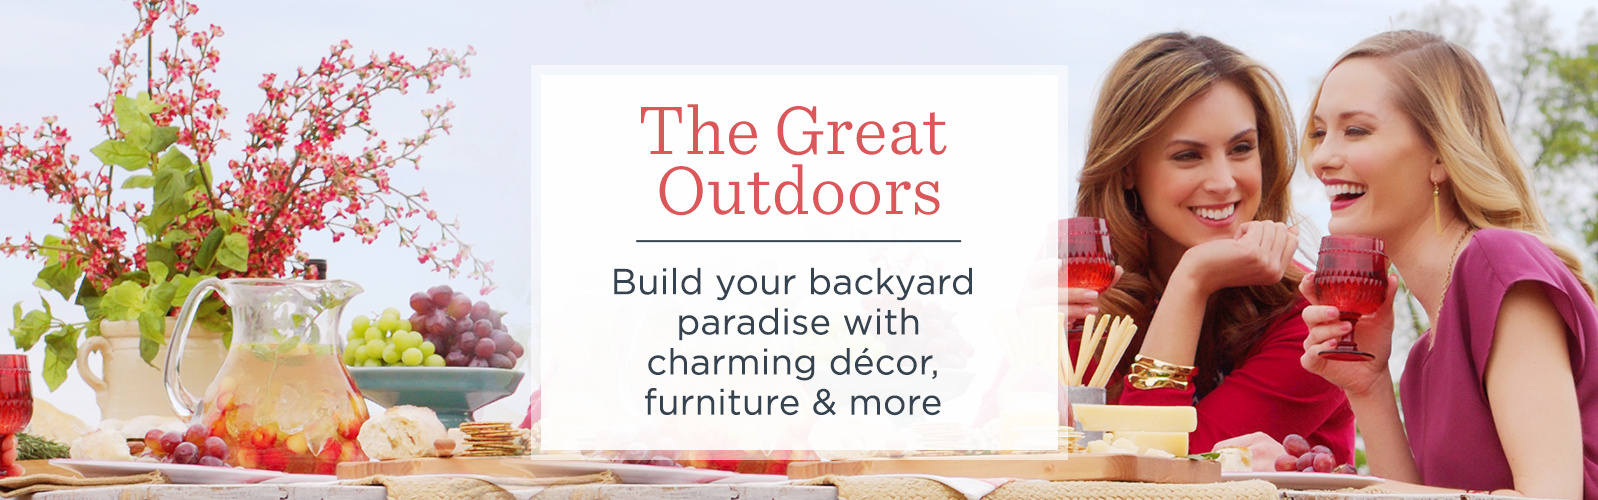 The Great Outdoors. Build your backyard paradise with charming décor, furniture & more